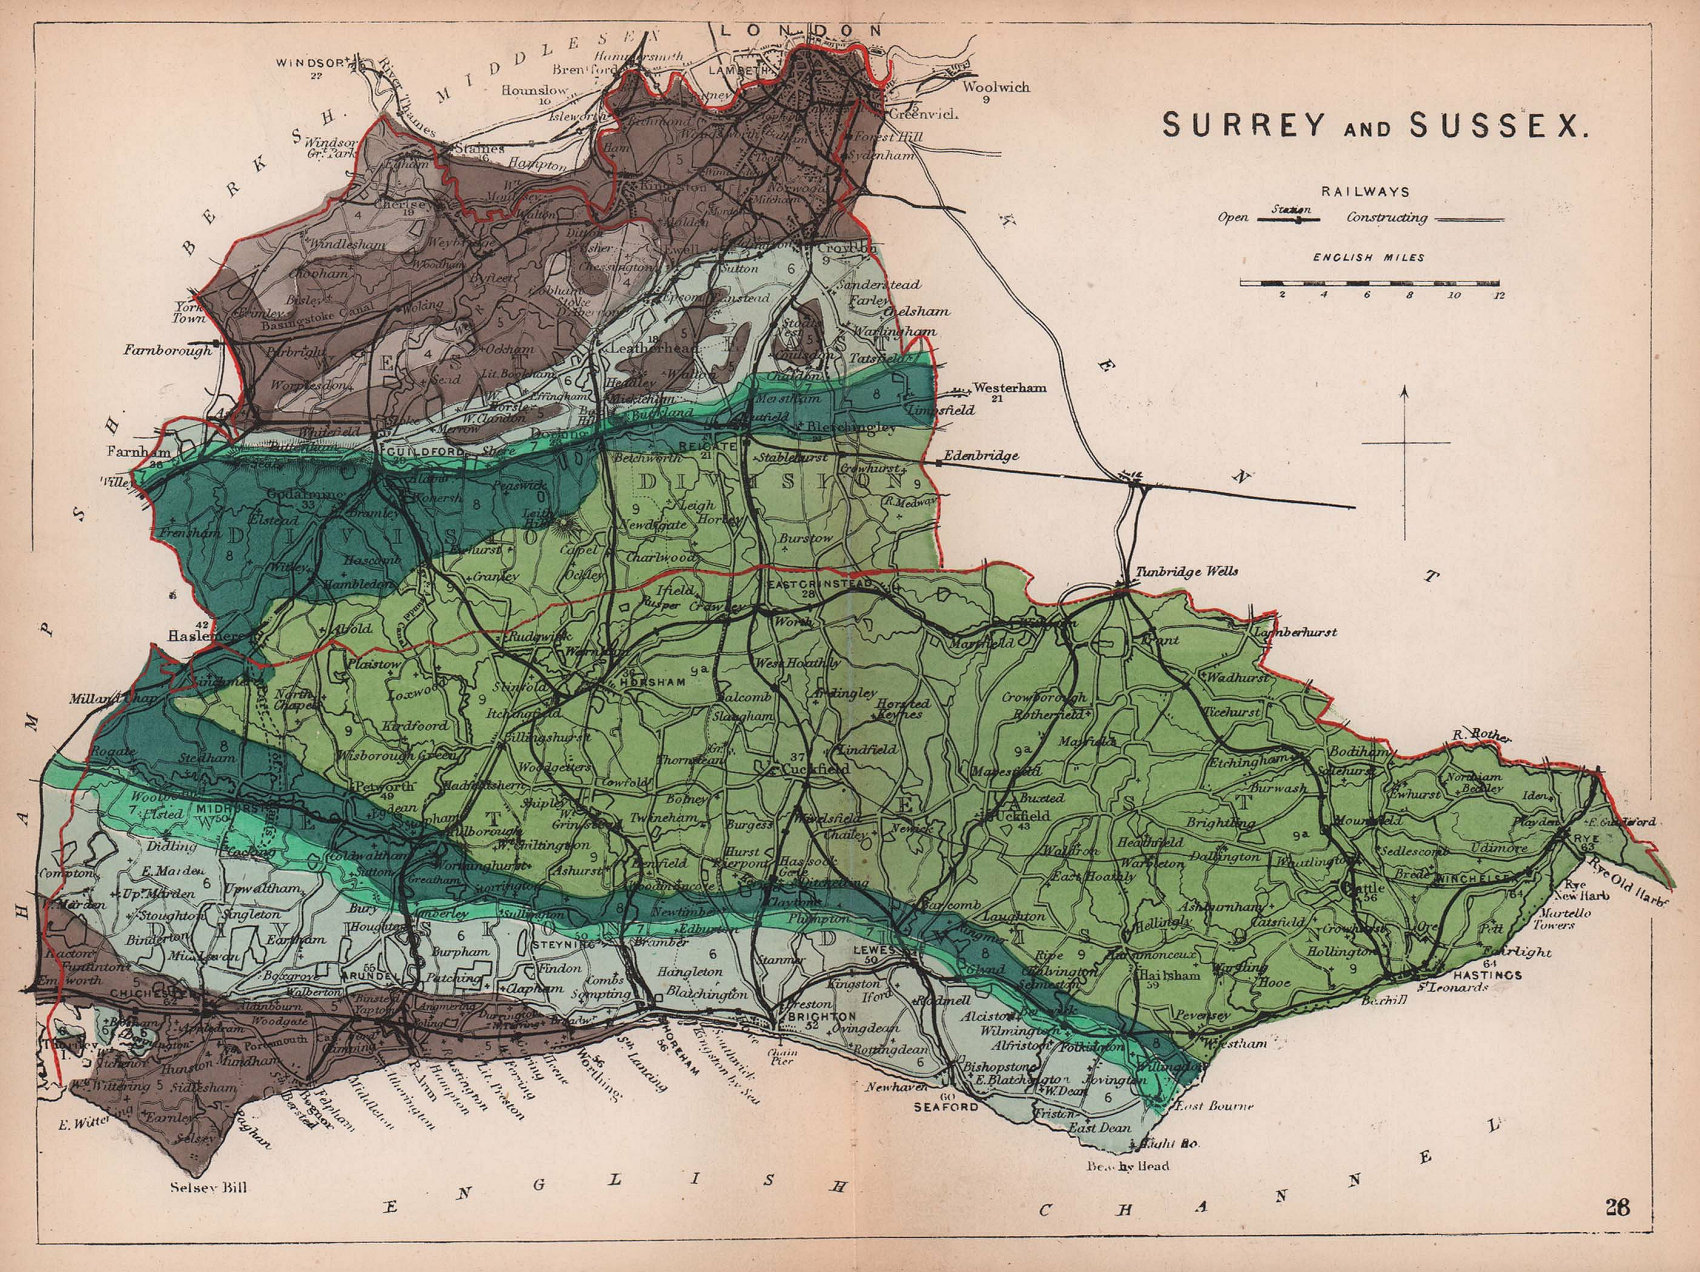 SURREY & SUSSEX antique geological county map by James Reynolds 1864